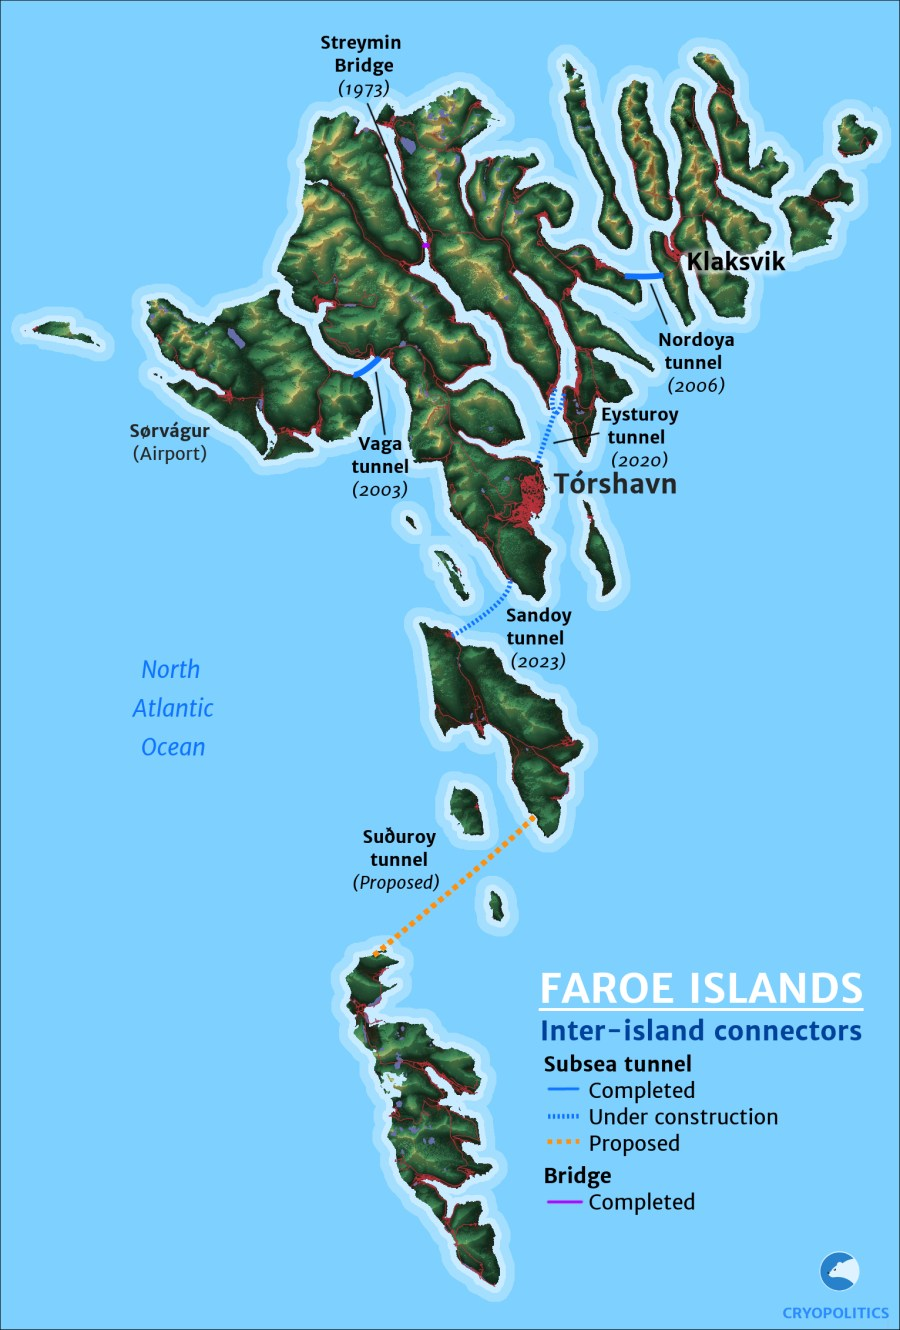 A map of bridges and subsea tunnels in the Faroes.